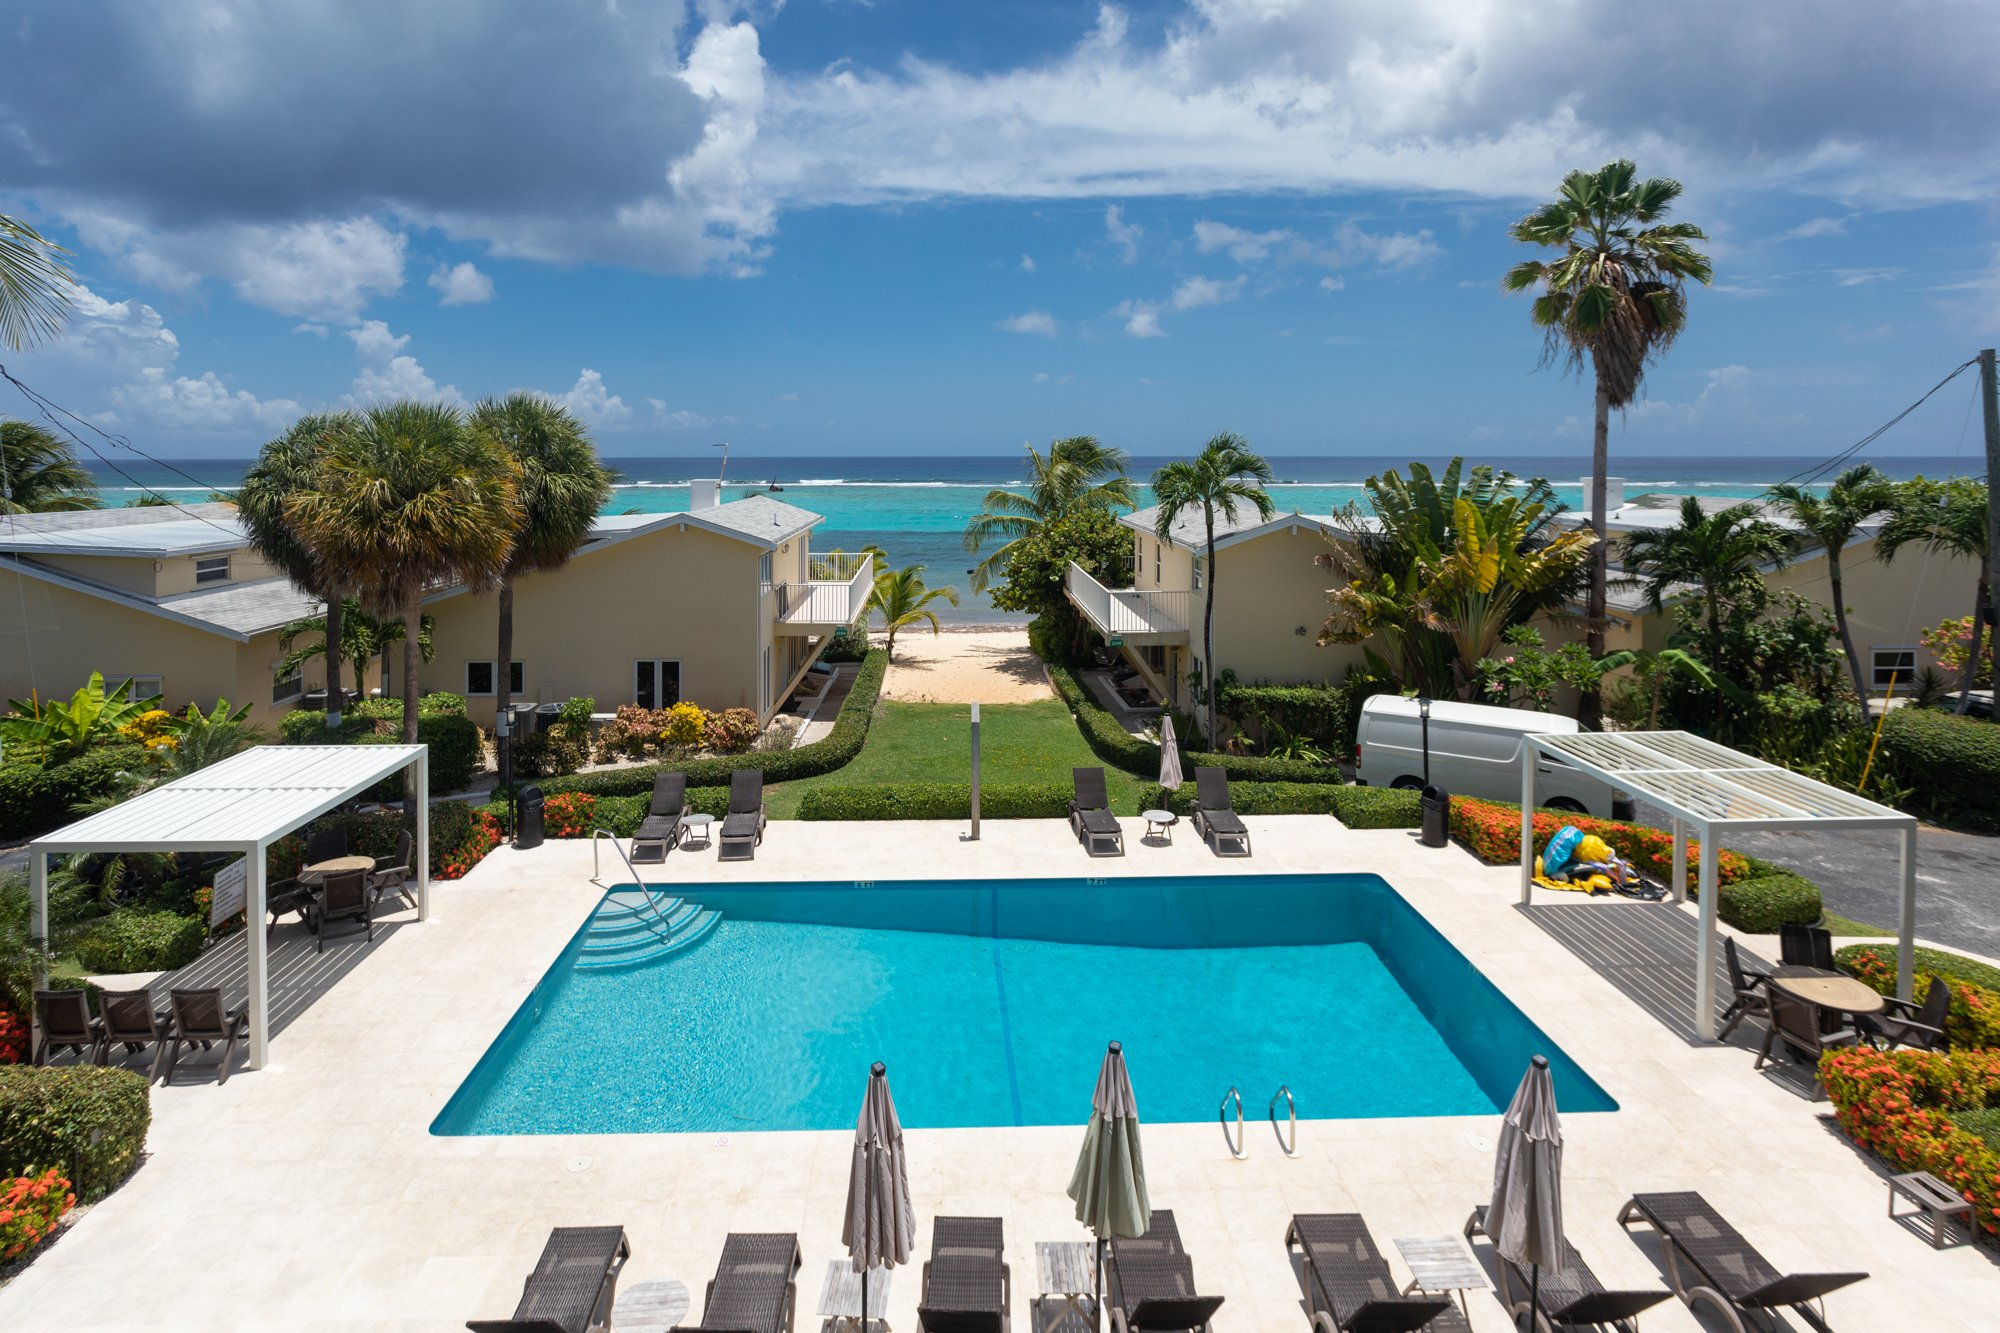 House in George Town, George Town, Cayman Islands 1 - 11573977